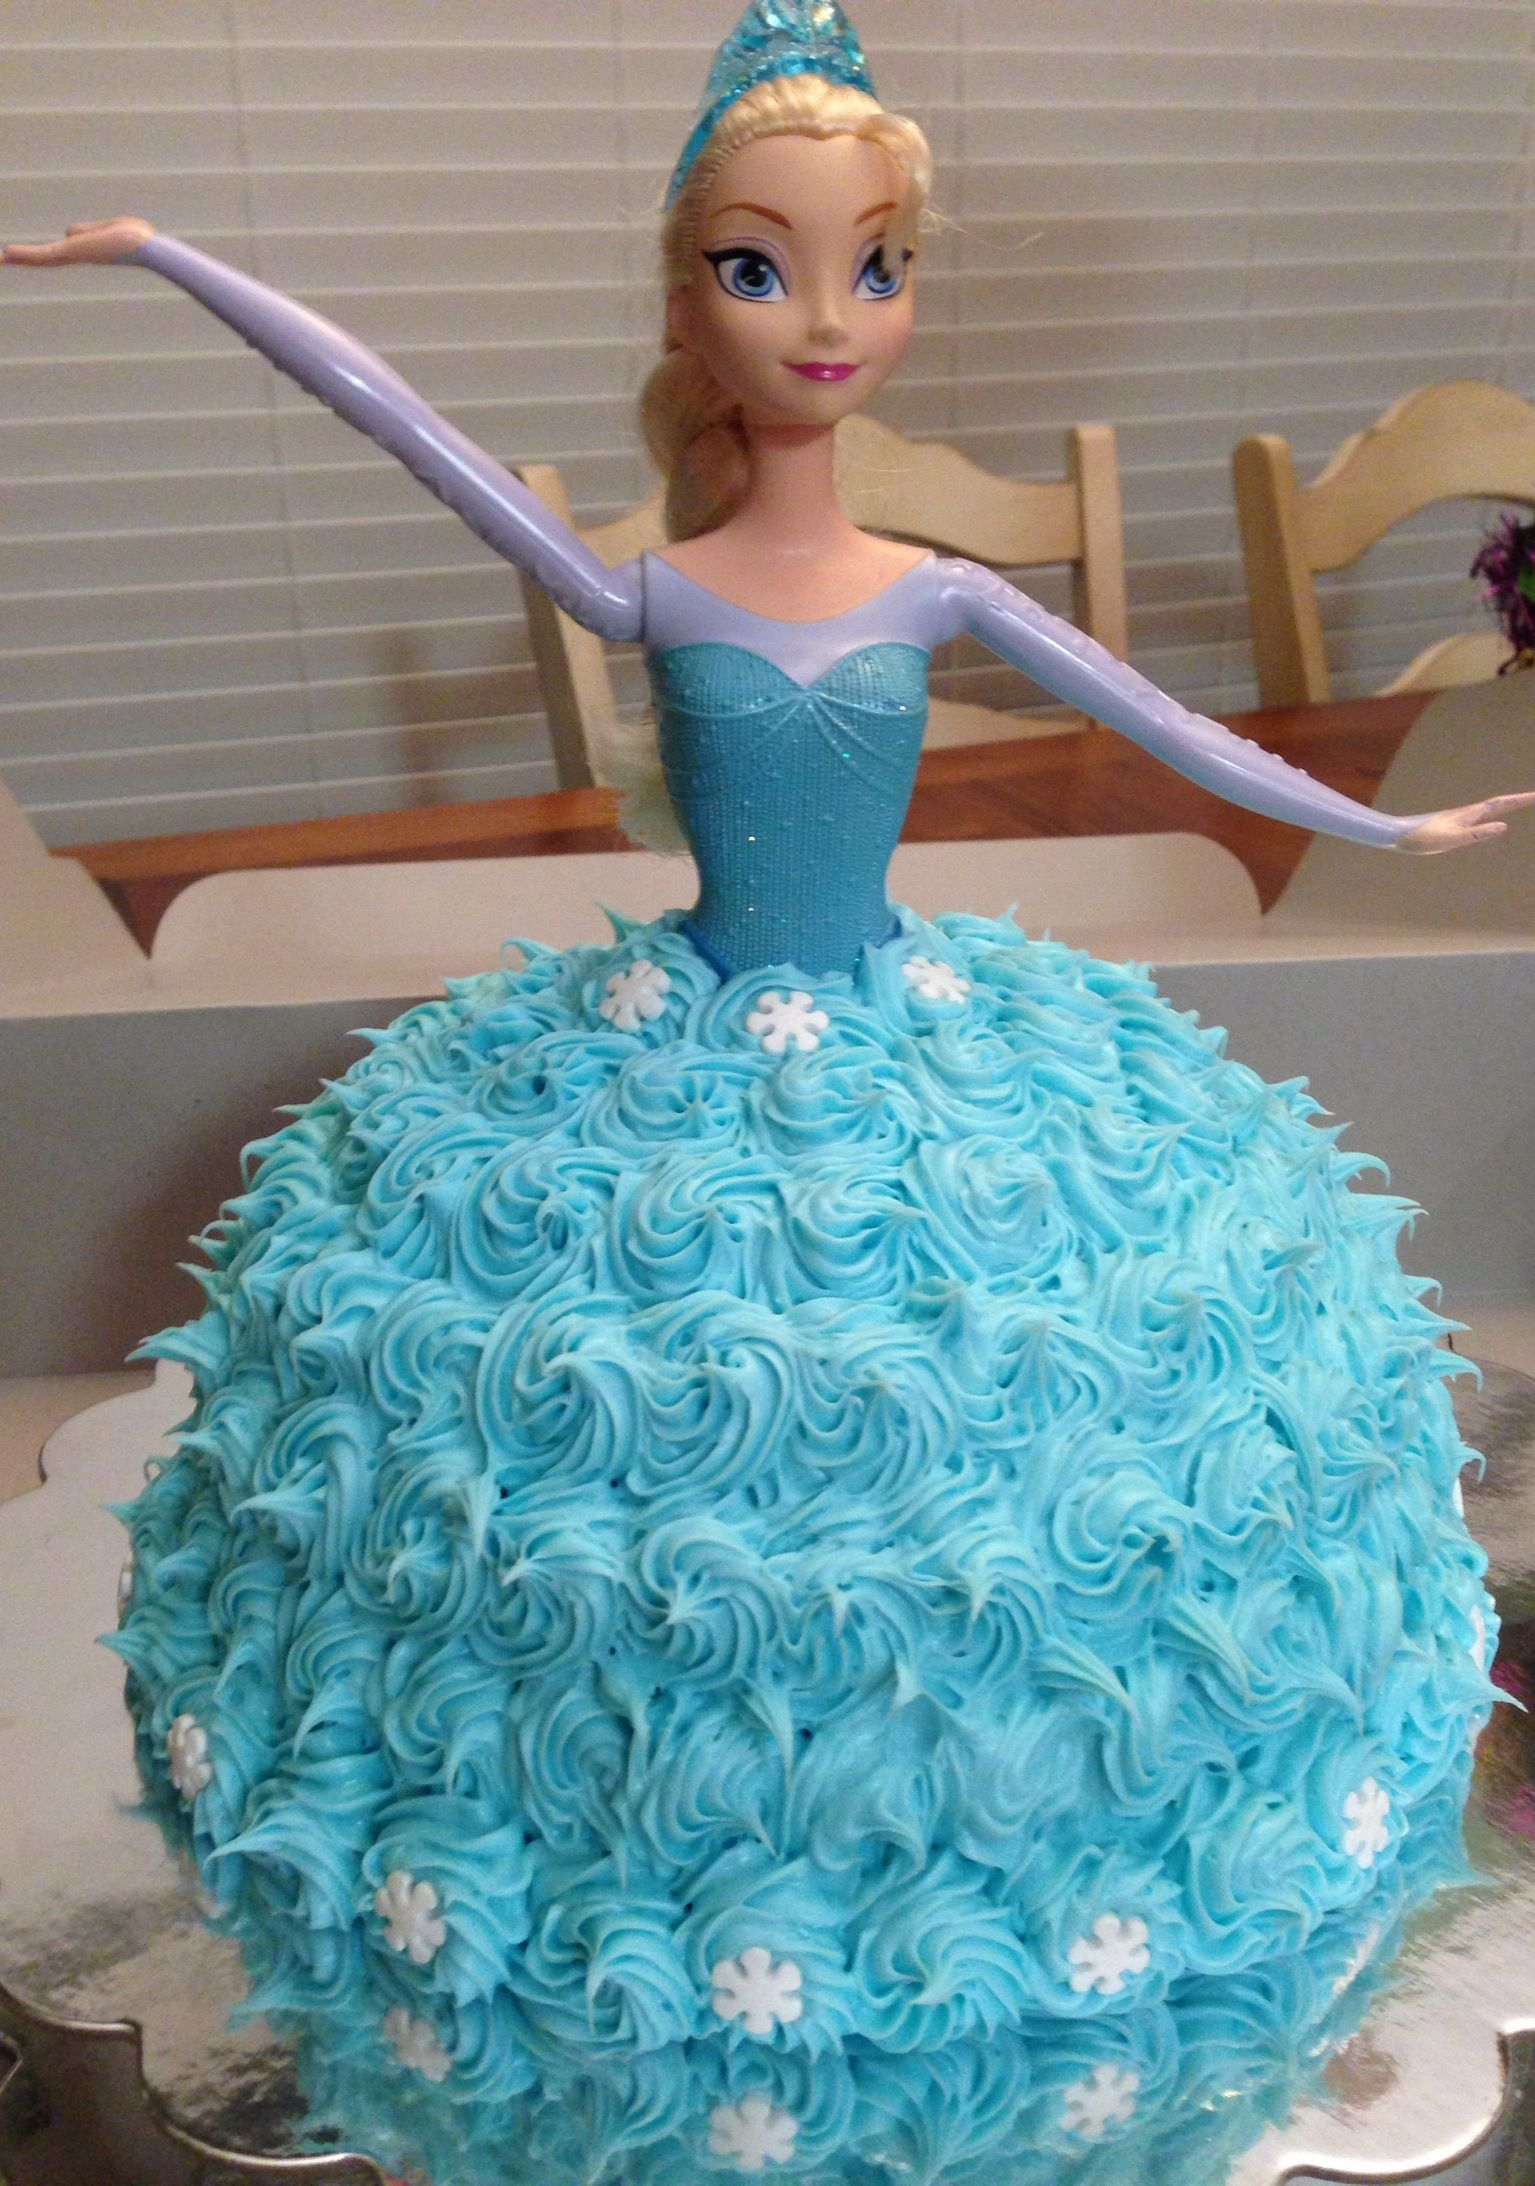 Cake ideas for maryas 5th bday party Her favorite character is